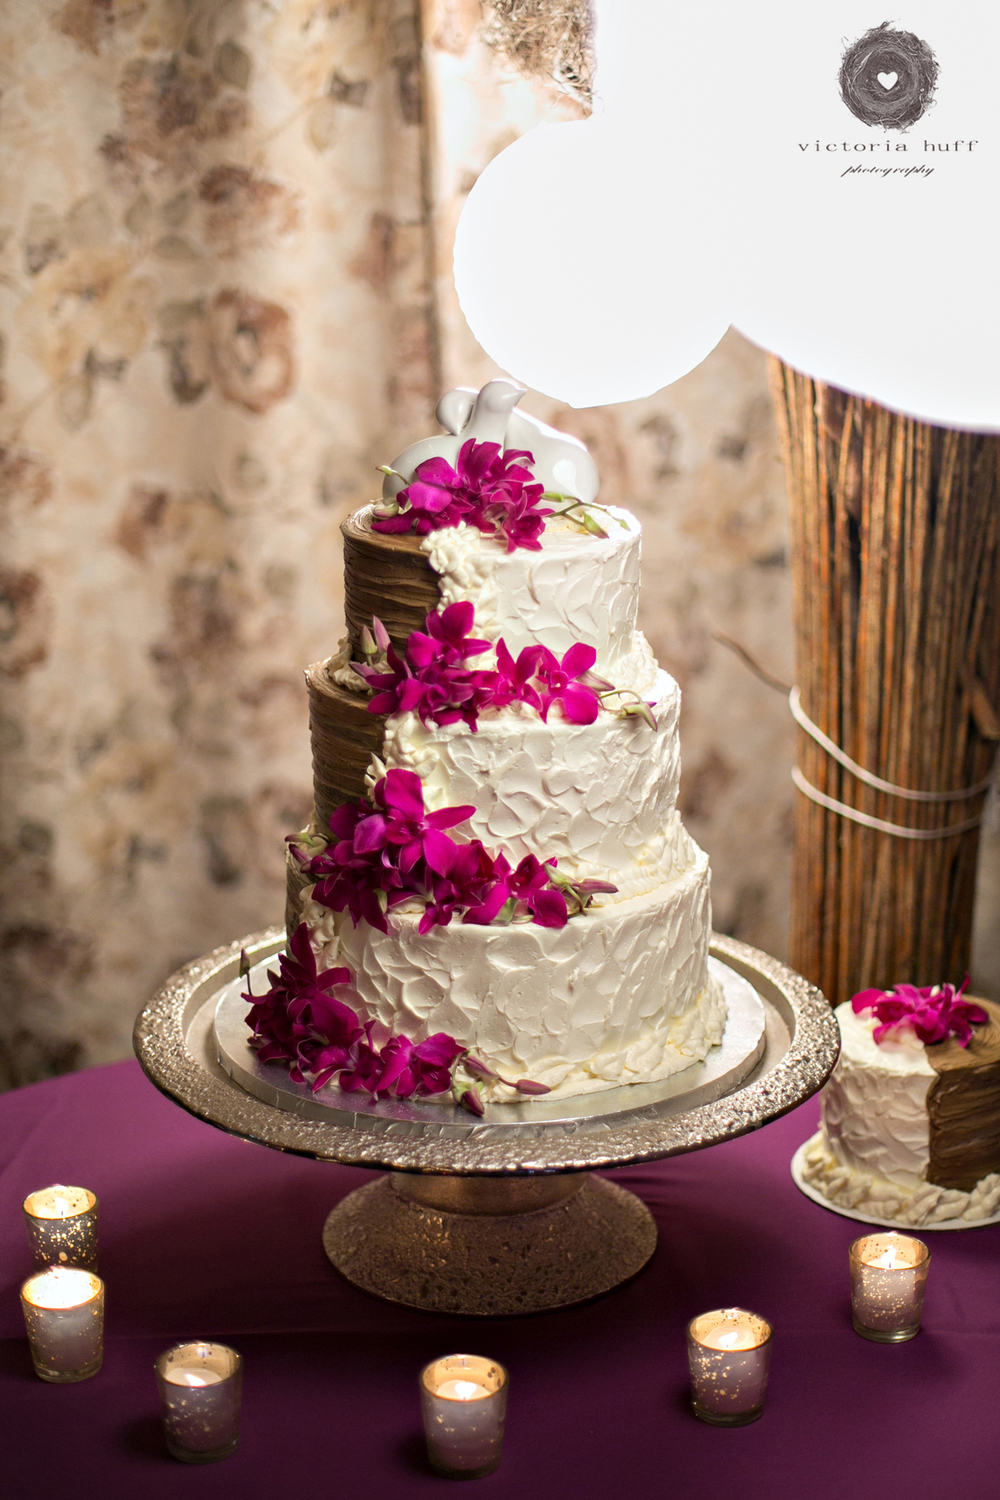 Wedding-Photography-Meagan-Kerske-Reynolds-Nashville-Tennessee-Centennial-Park-Gardens-of-Babylon-Wedding-cake.jpg